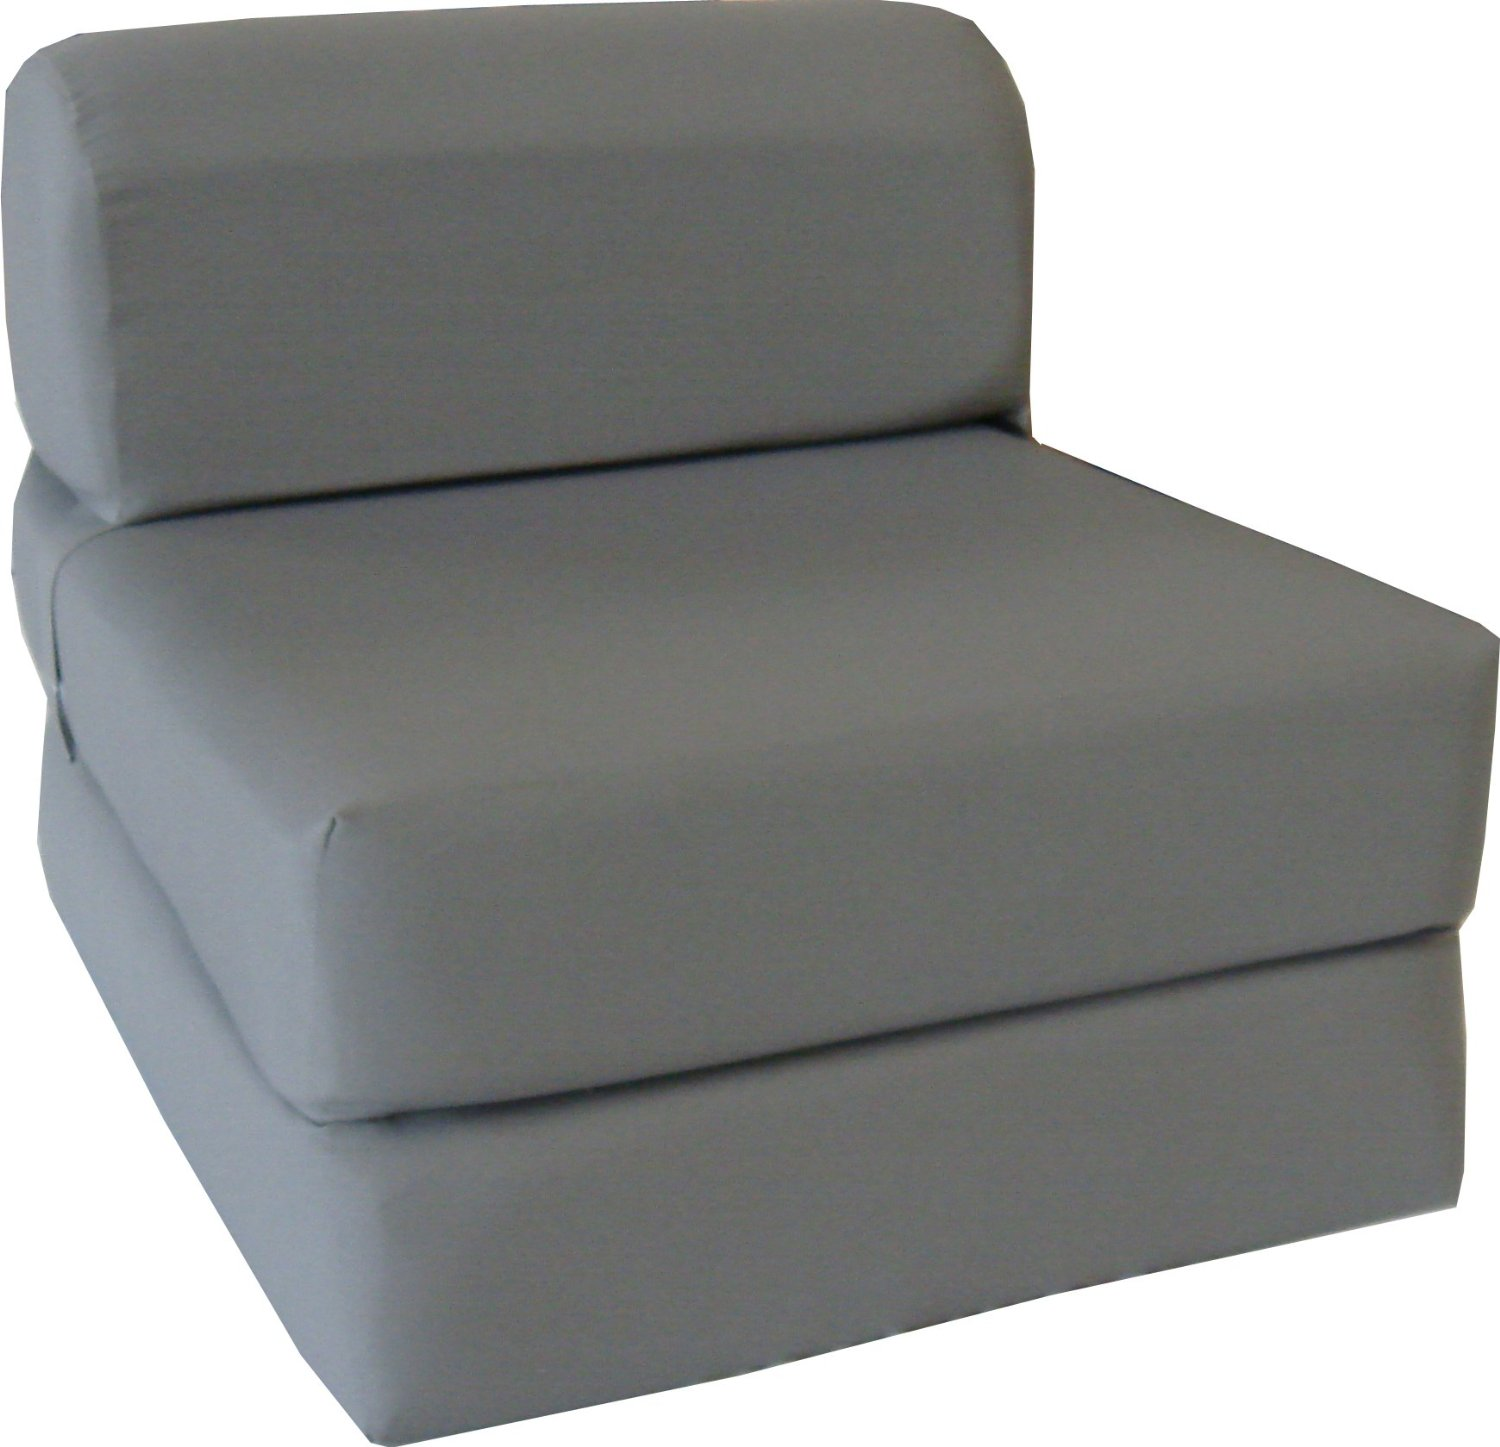 Amazoncom Gray Sleeper Chair Folding Foam Bed Sized 6 Thick X 32